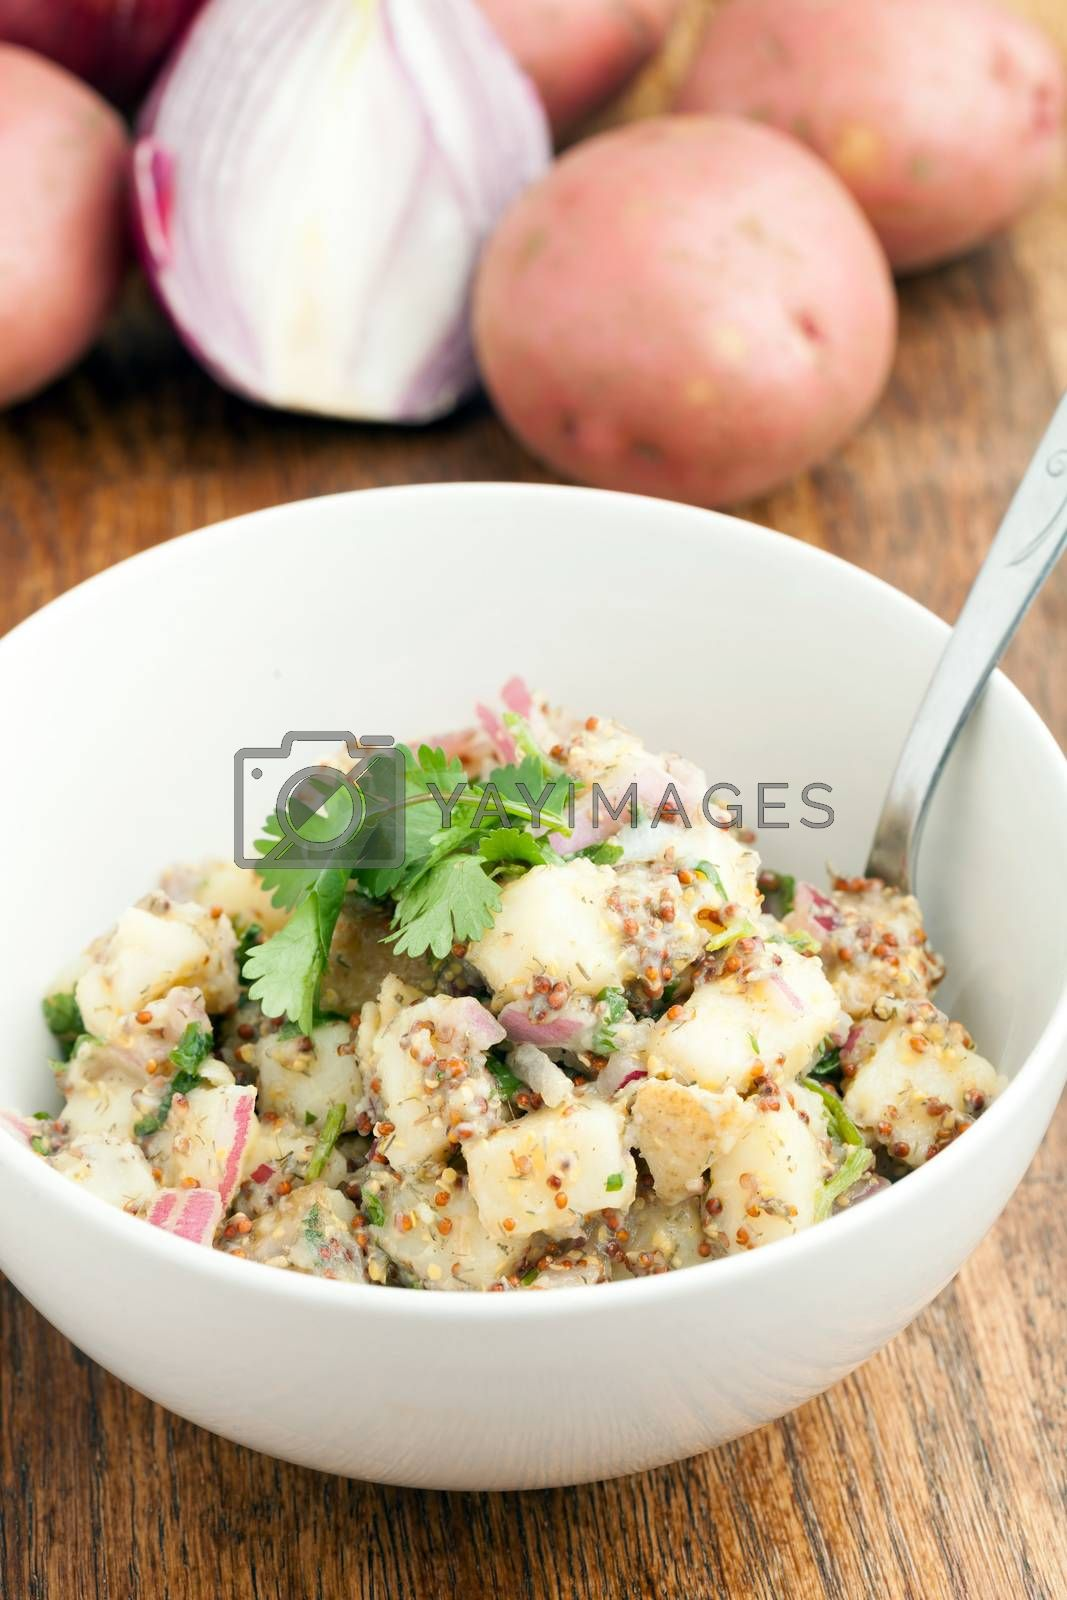 Potato salad freshly homemade without mayonaise.  Ingredients include cilantro olive oil vinegar whole grain dijon mustard red onions and potatoes.